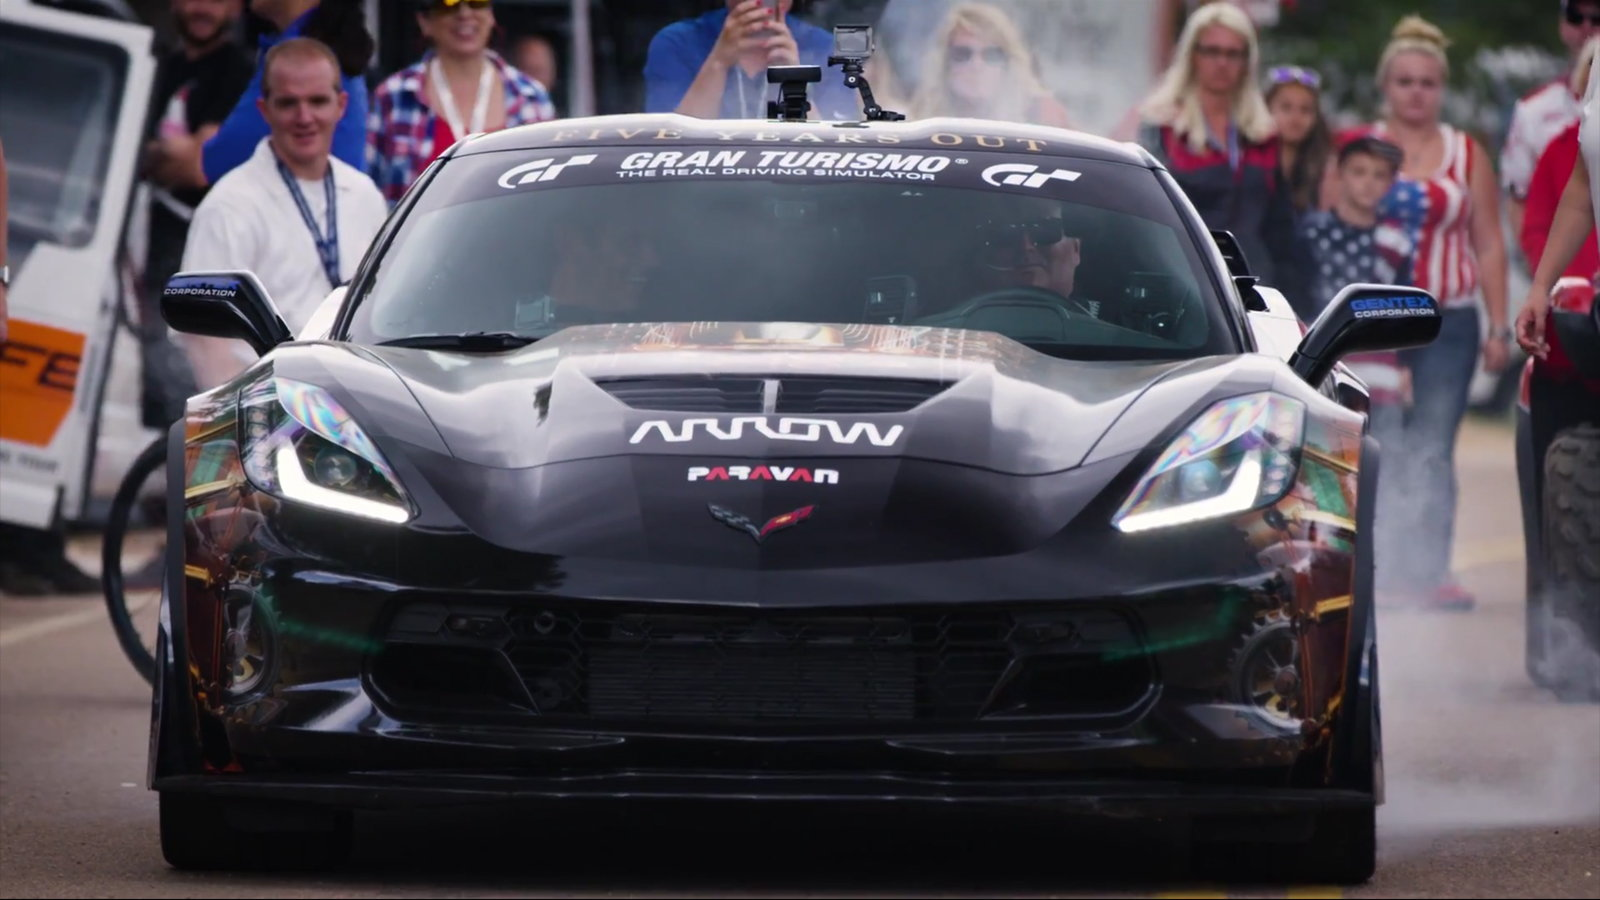 Arrow's C7 Sam Schmidt